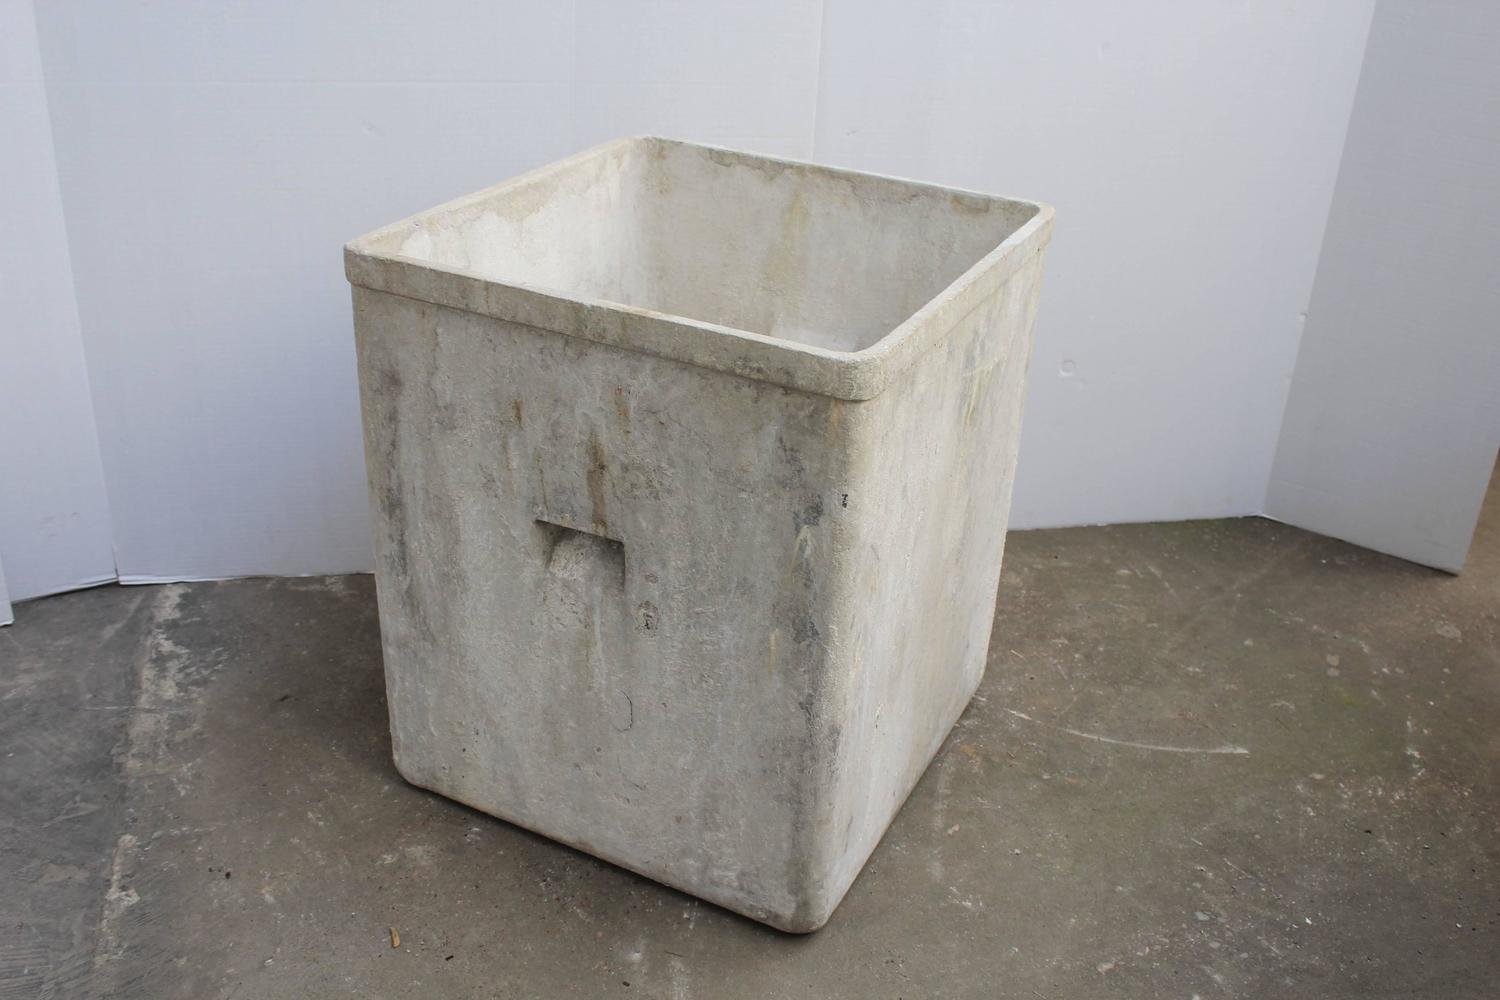 Vintage french cast cement planters for sale at 1stdibs - Casting concrete planters ...